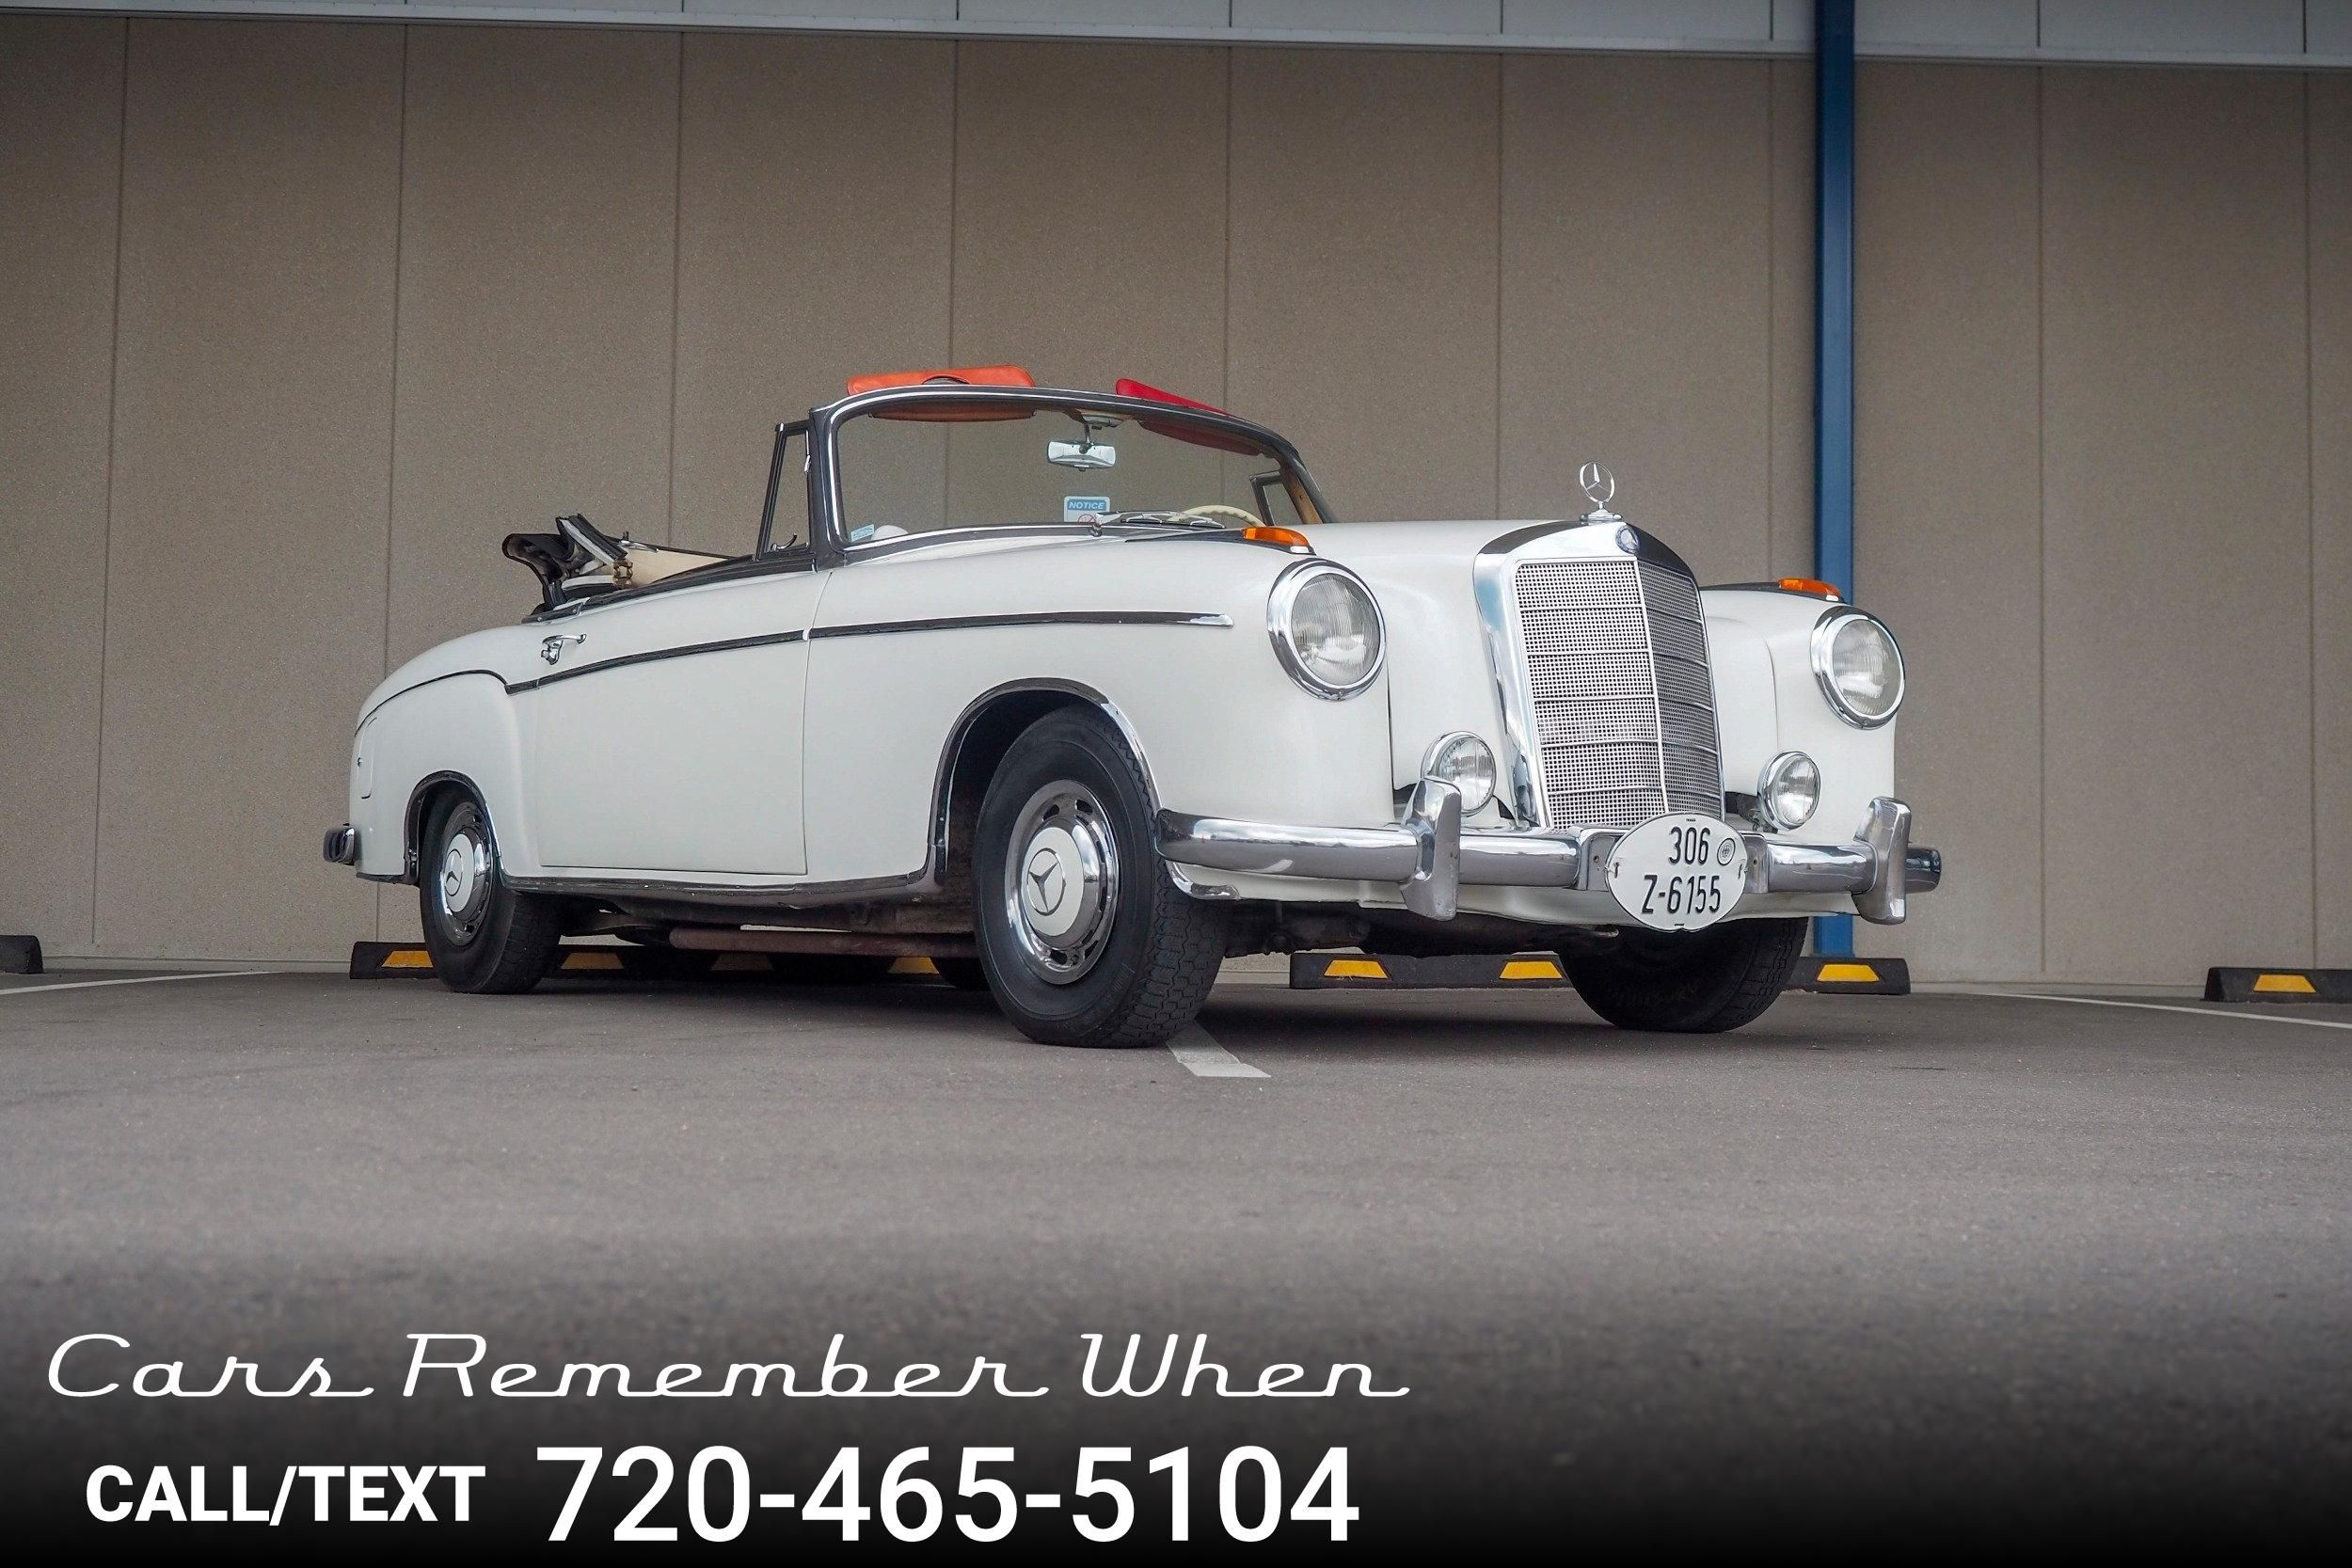 Classic Cars For Sale | Cars Remember When